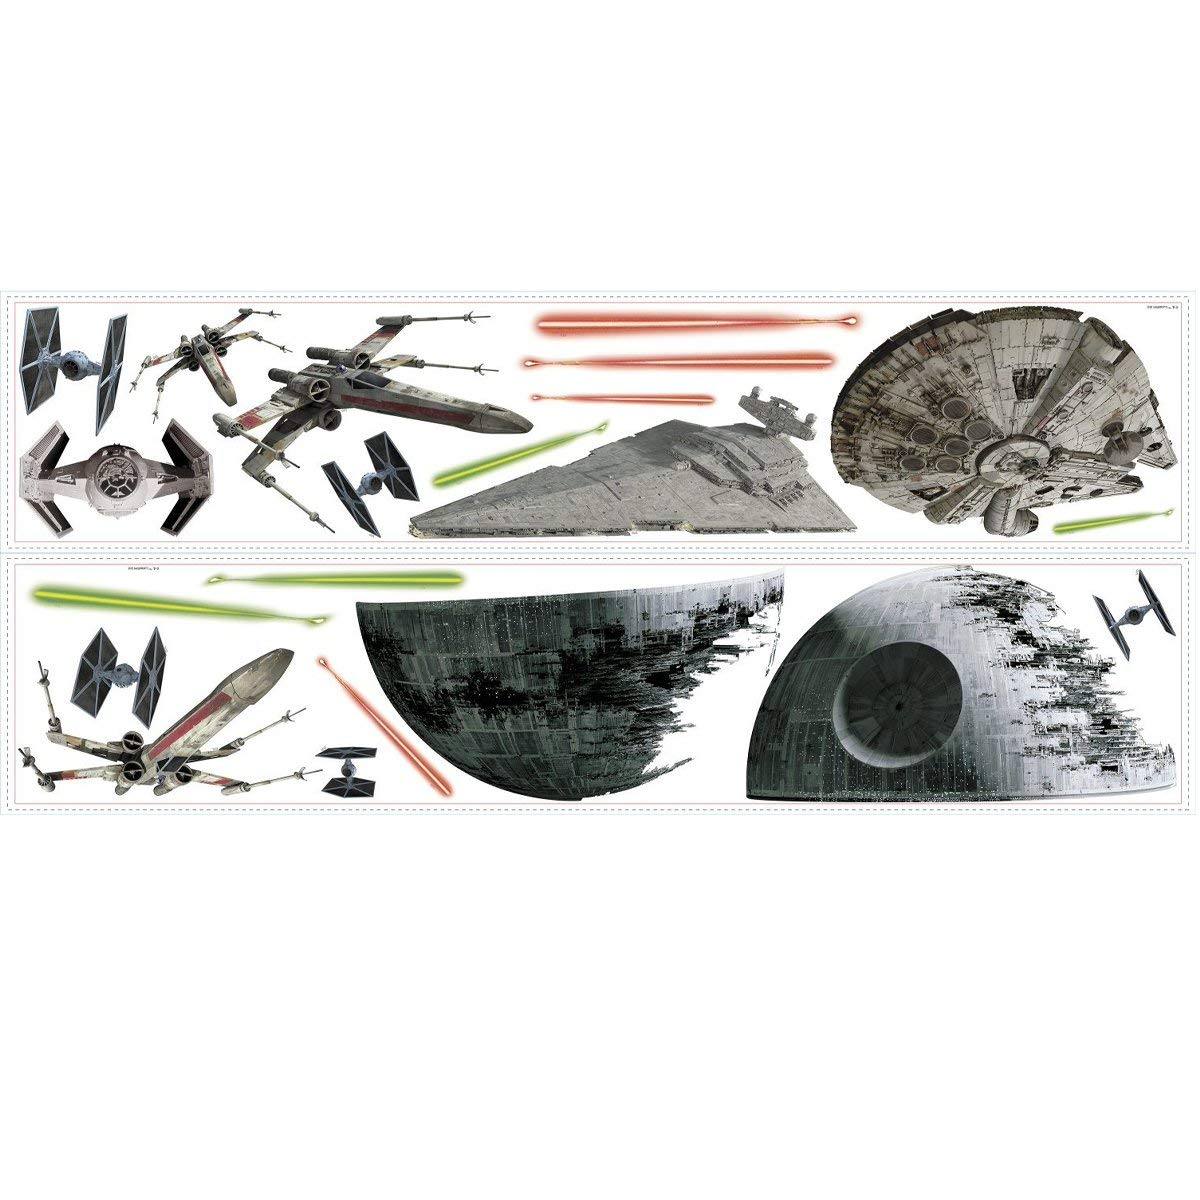 RoomMates Star Wars Classic Spaceships Peel and Stick Wall Decals by RoomMates (Image #3)